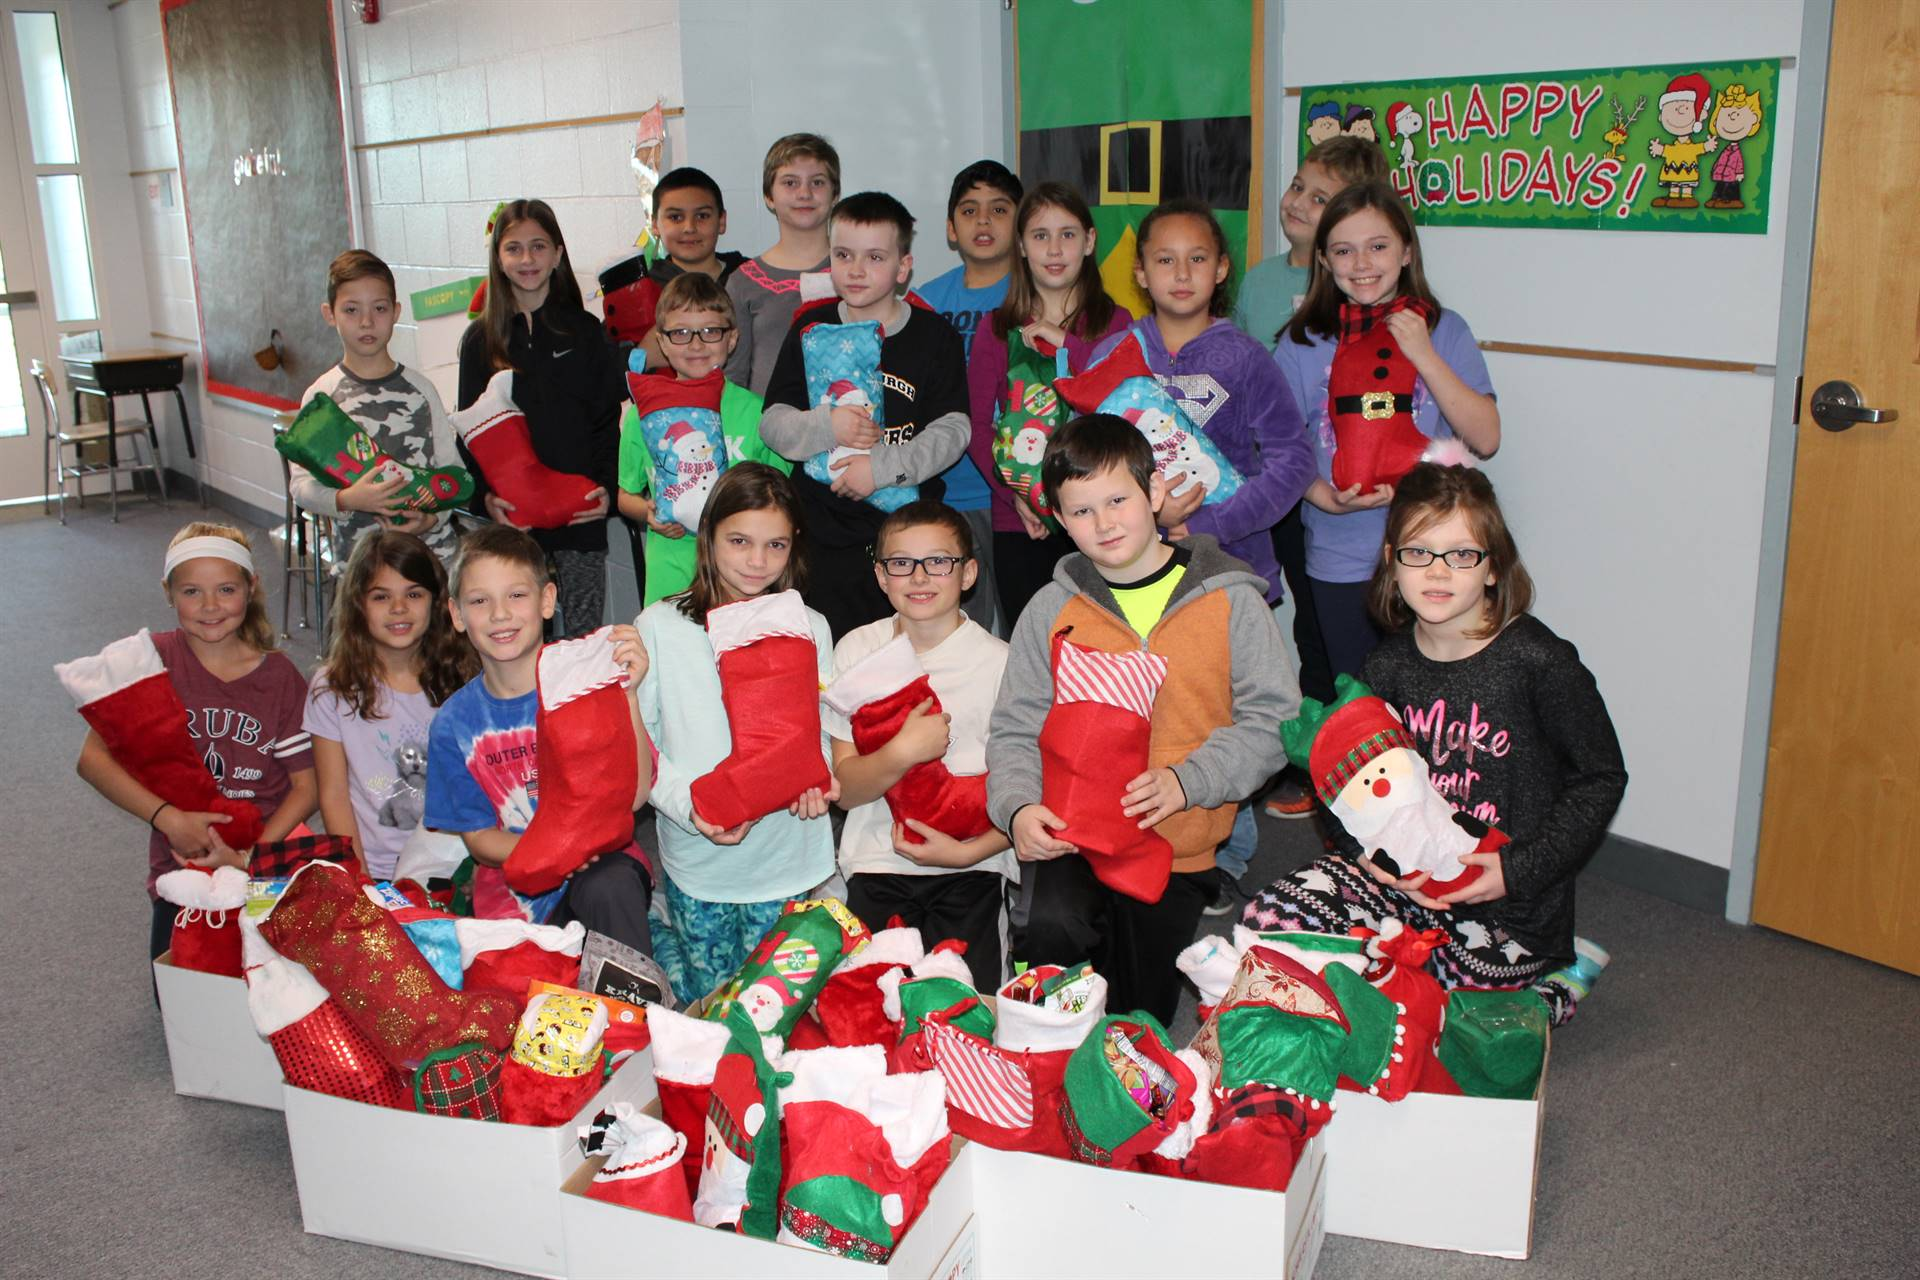 Memorial Fourth Graders with Christmas stockings for veterans